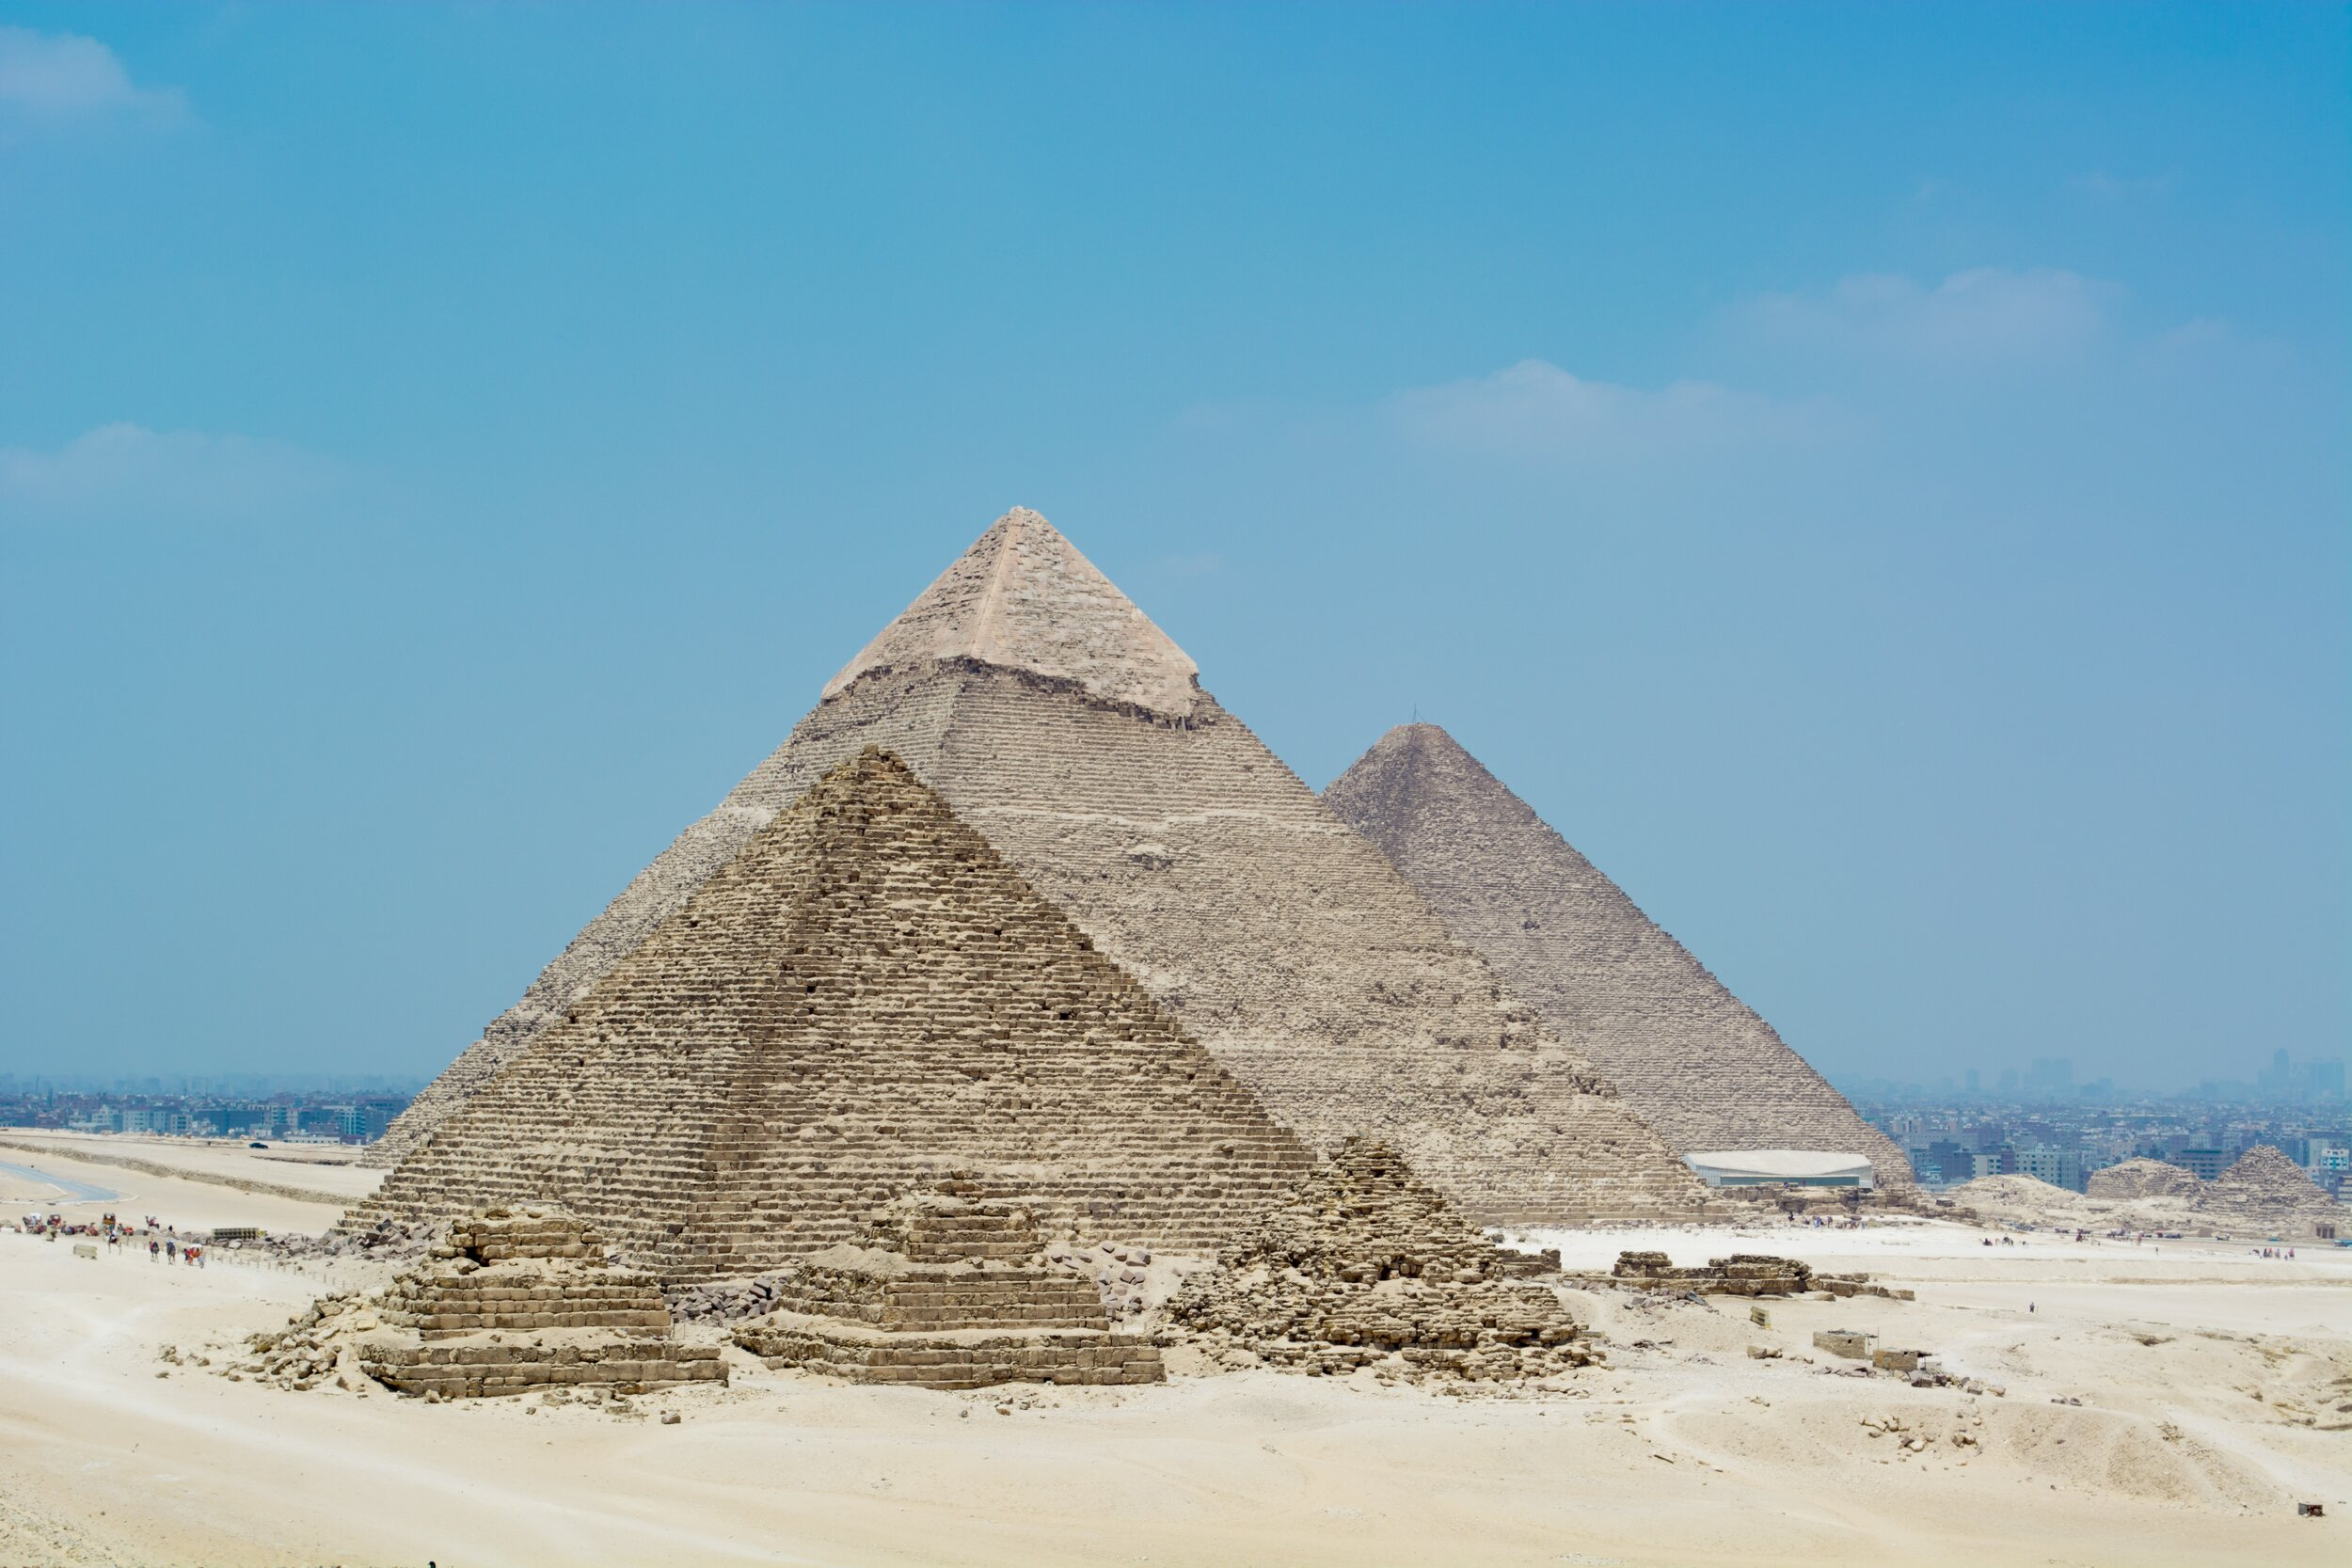 great-pyramid-of-giza-under-the-blue-sky-3689863.jpg